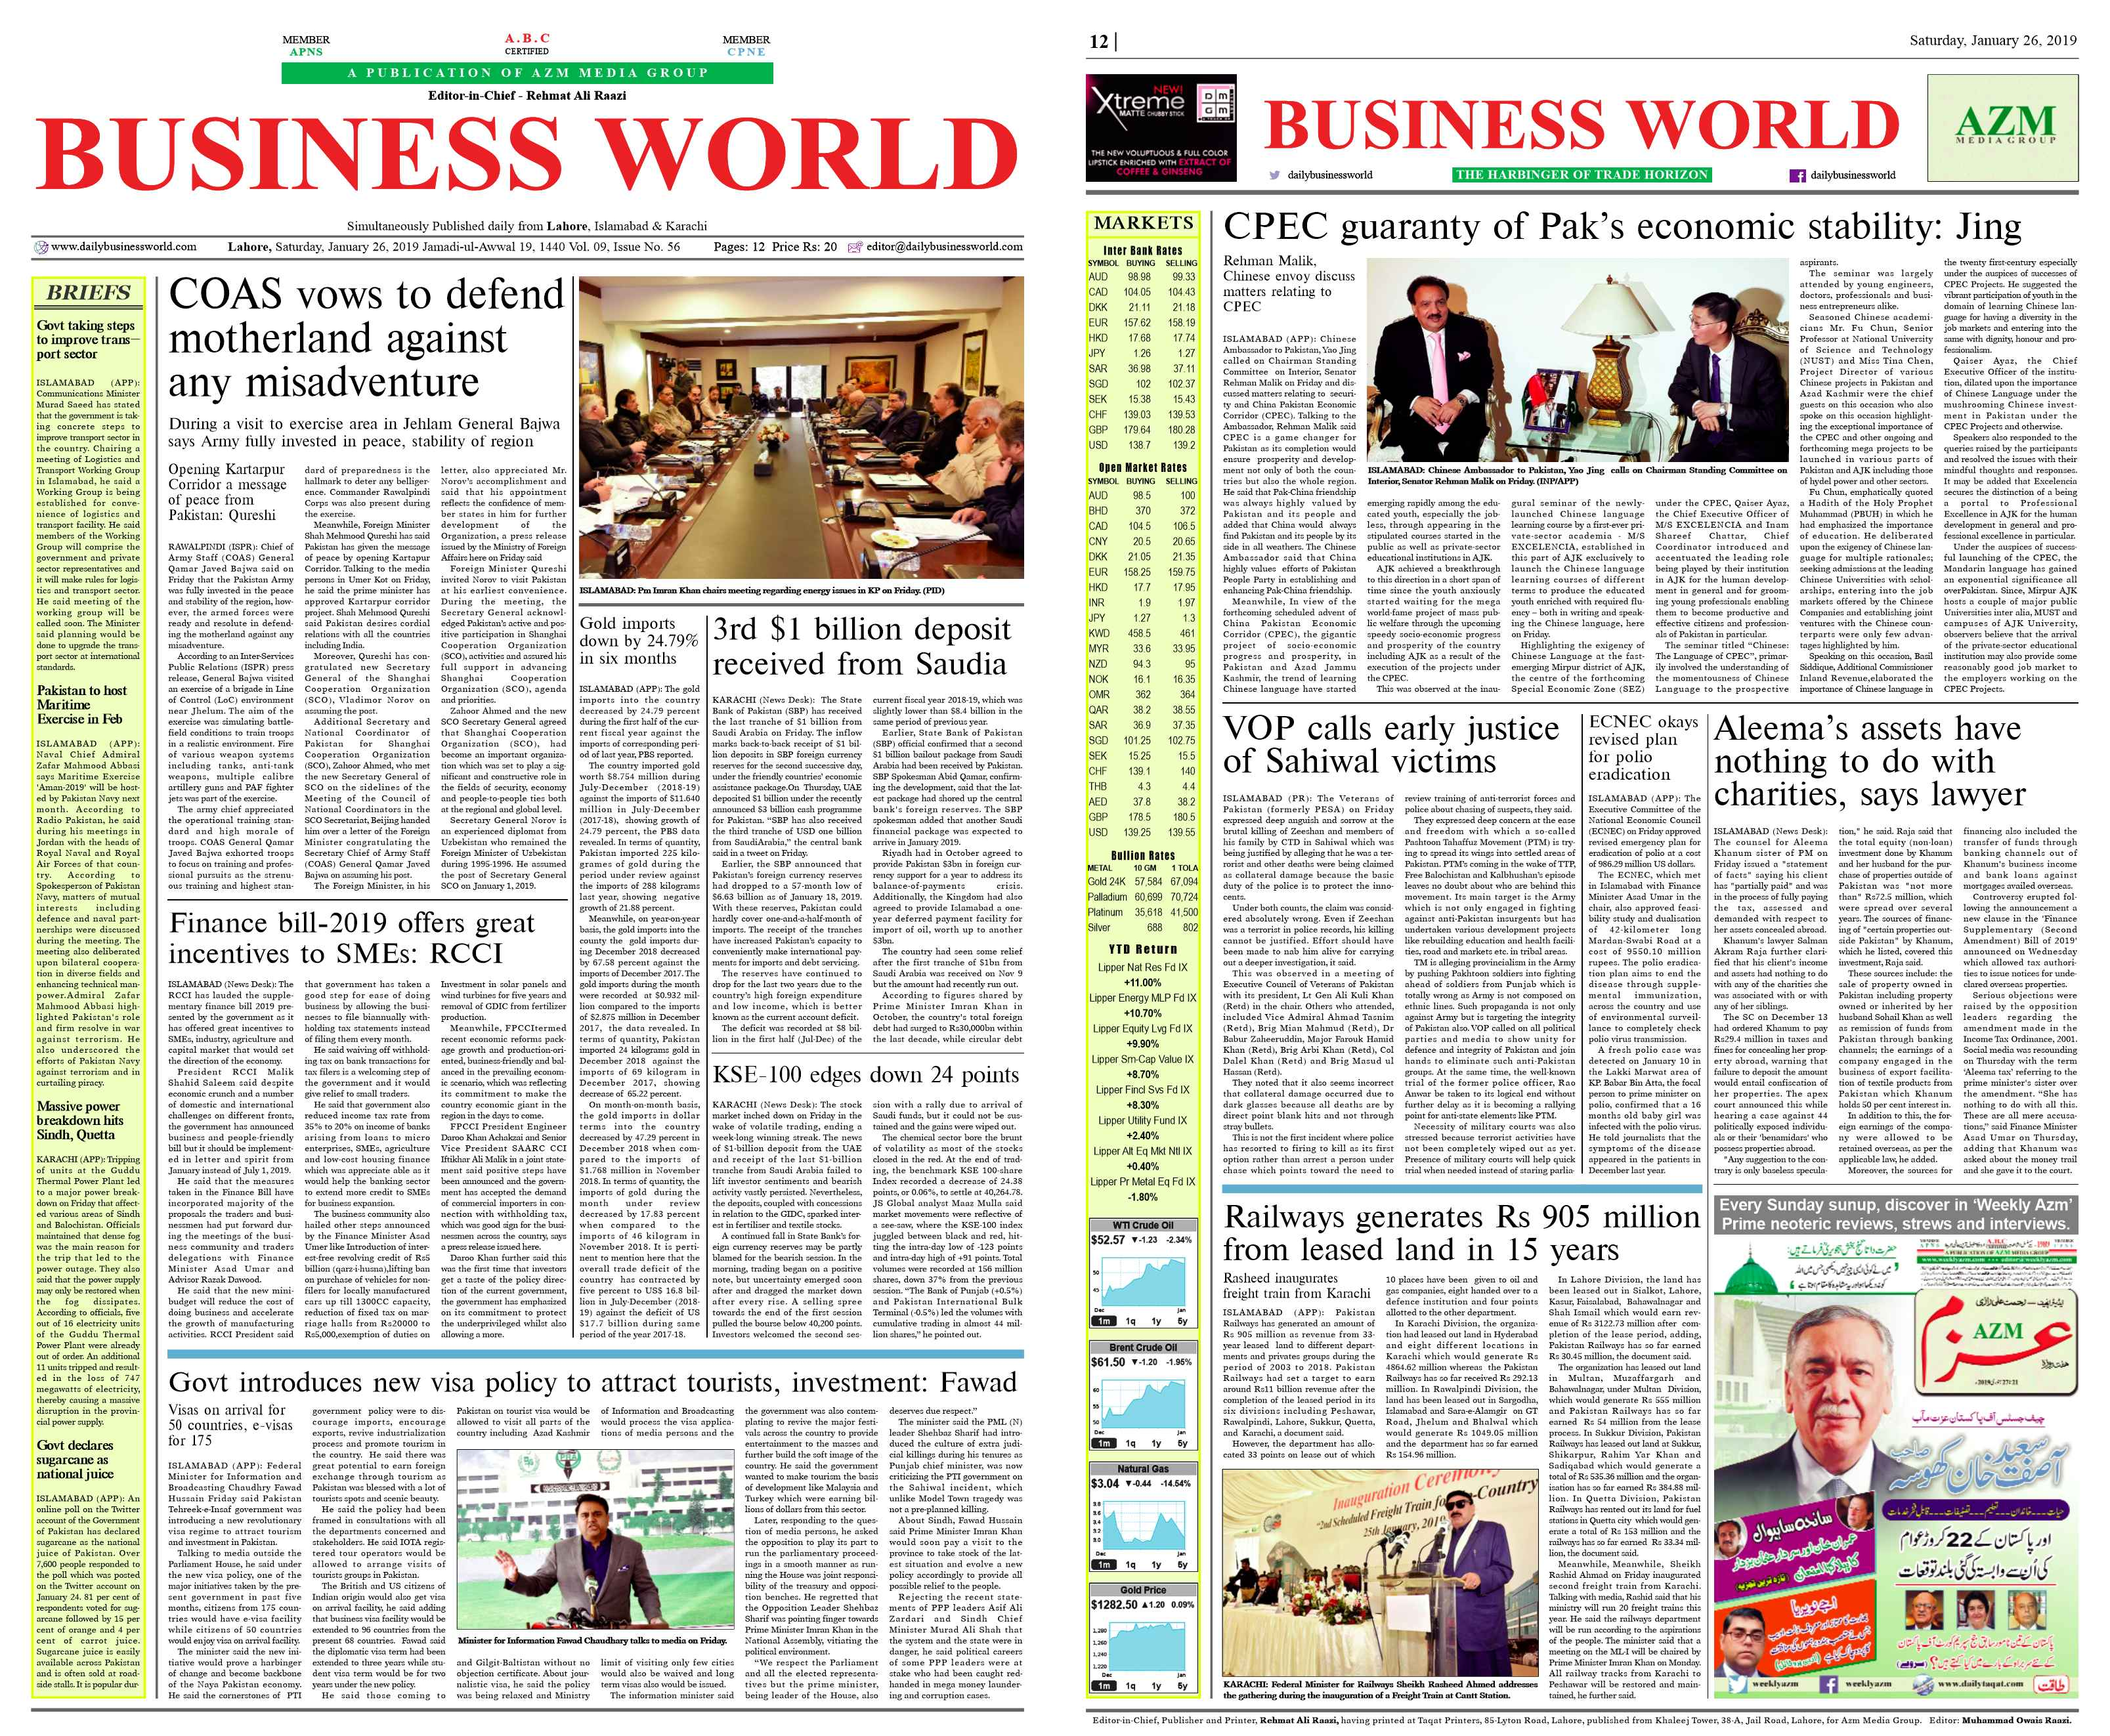 Daily Business World E-Paper 26 January 2019 - Daily Business World